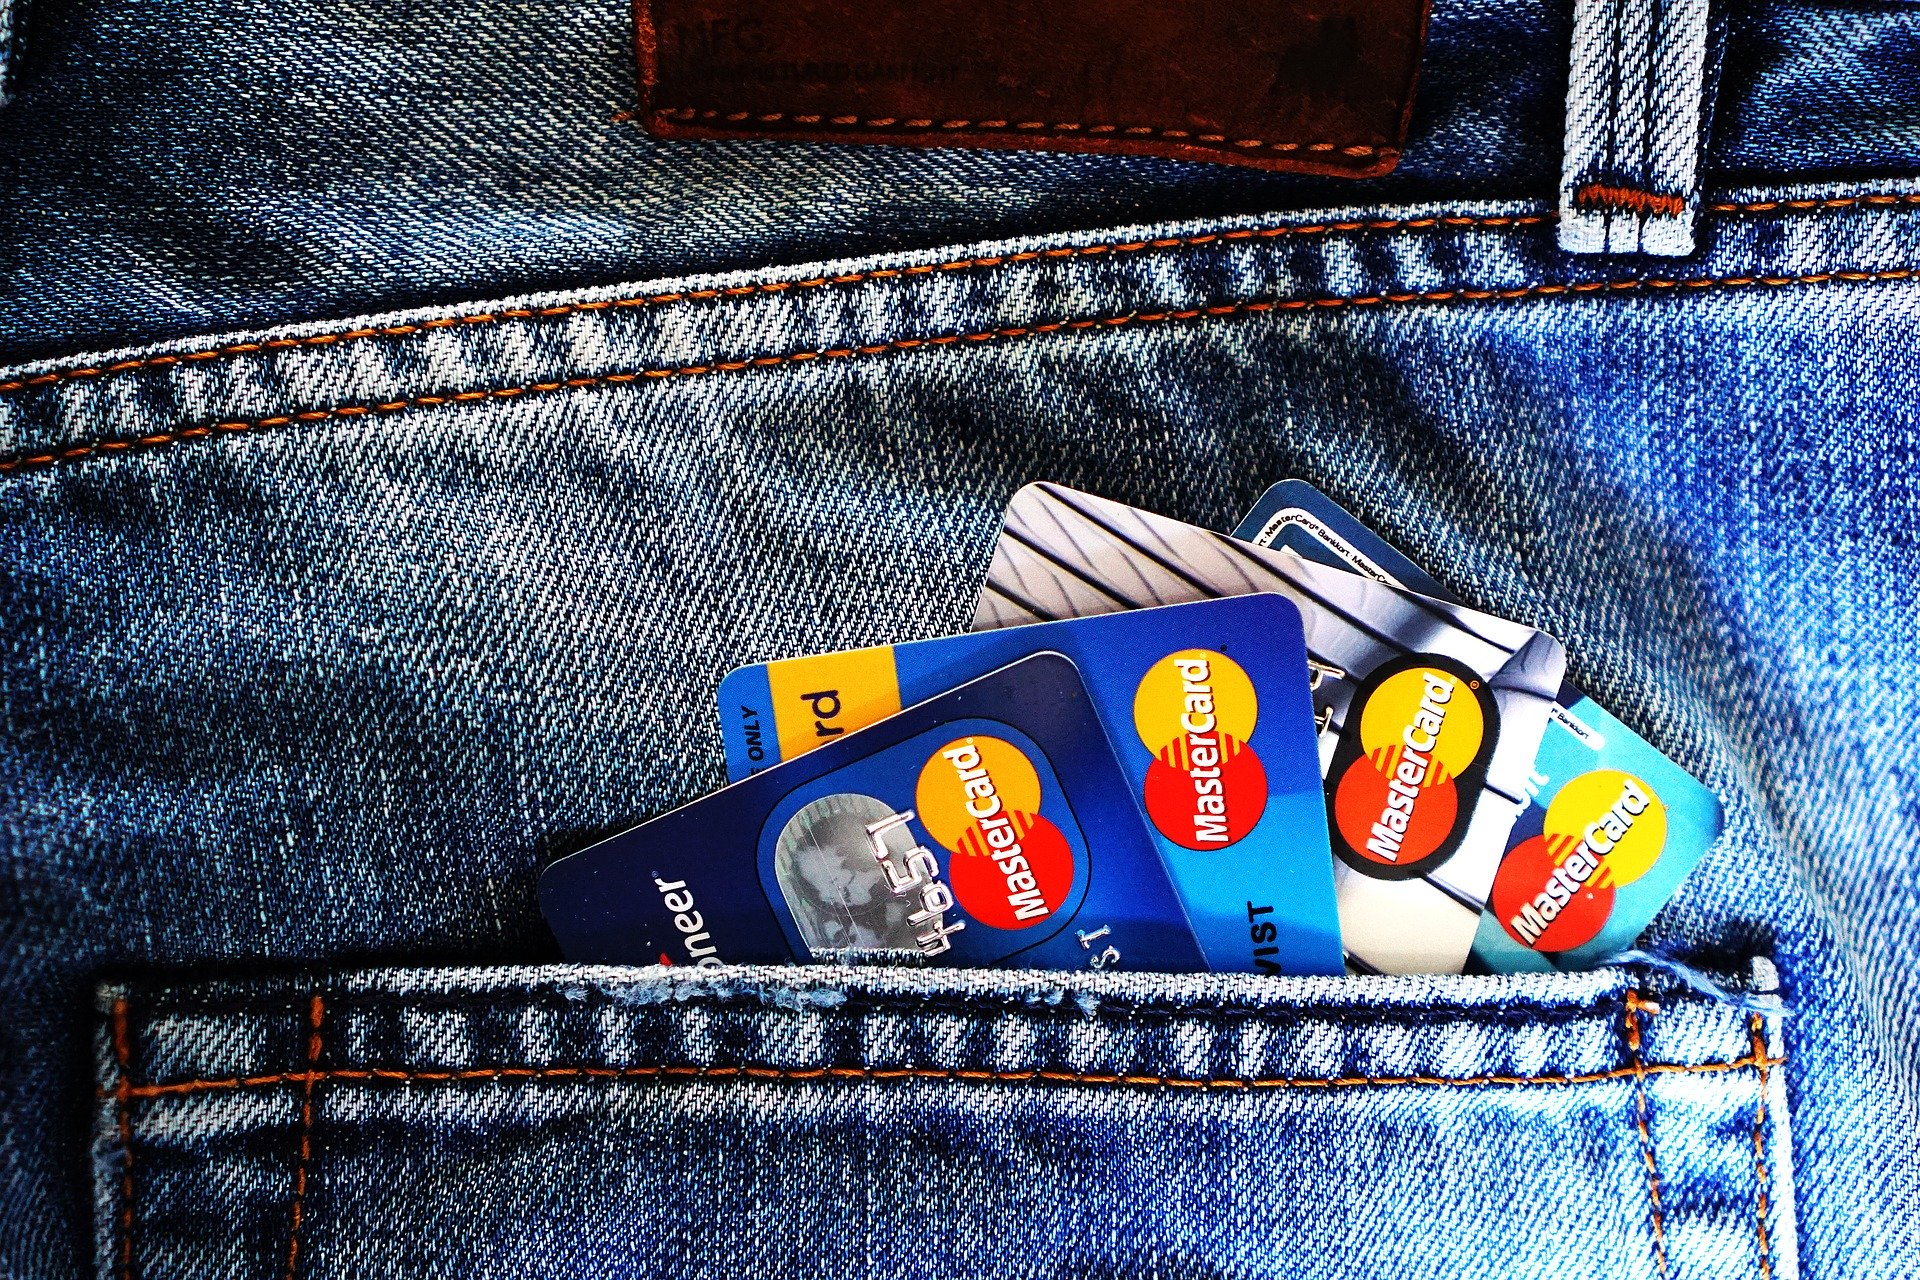 How To Manage Credit Card Spending